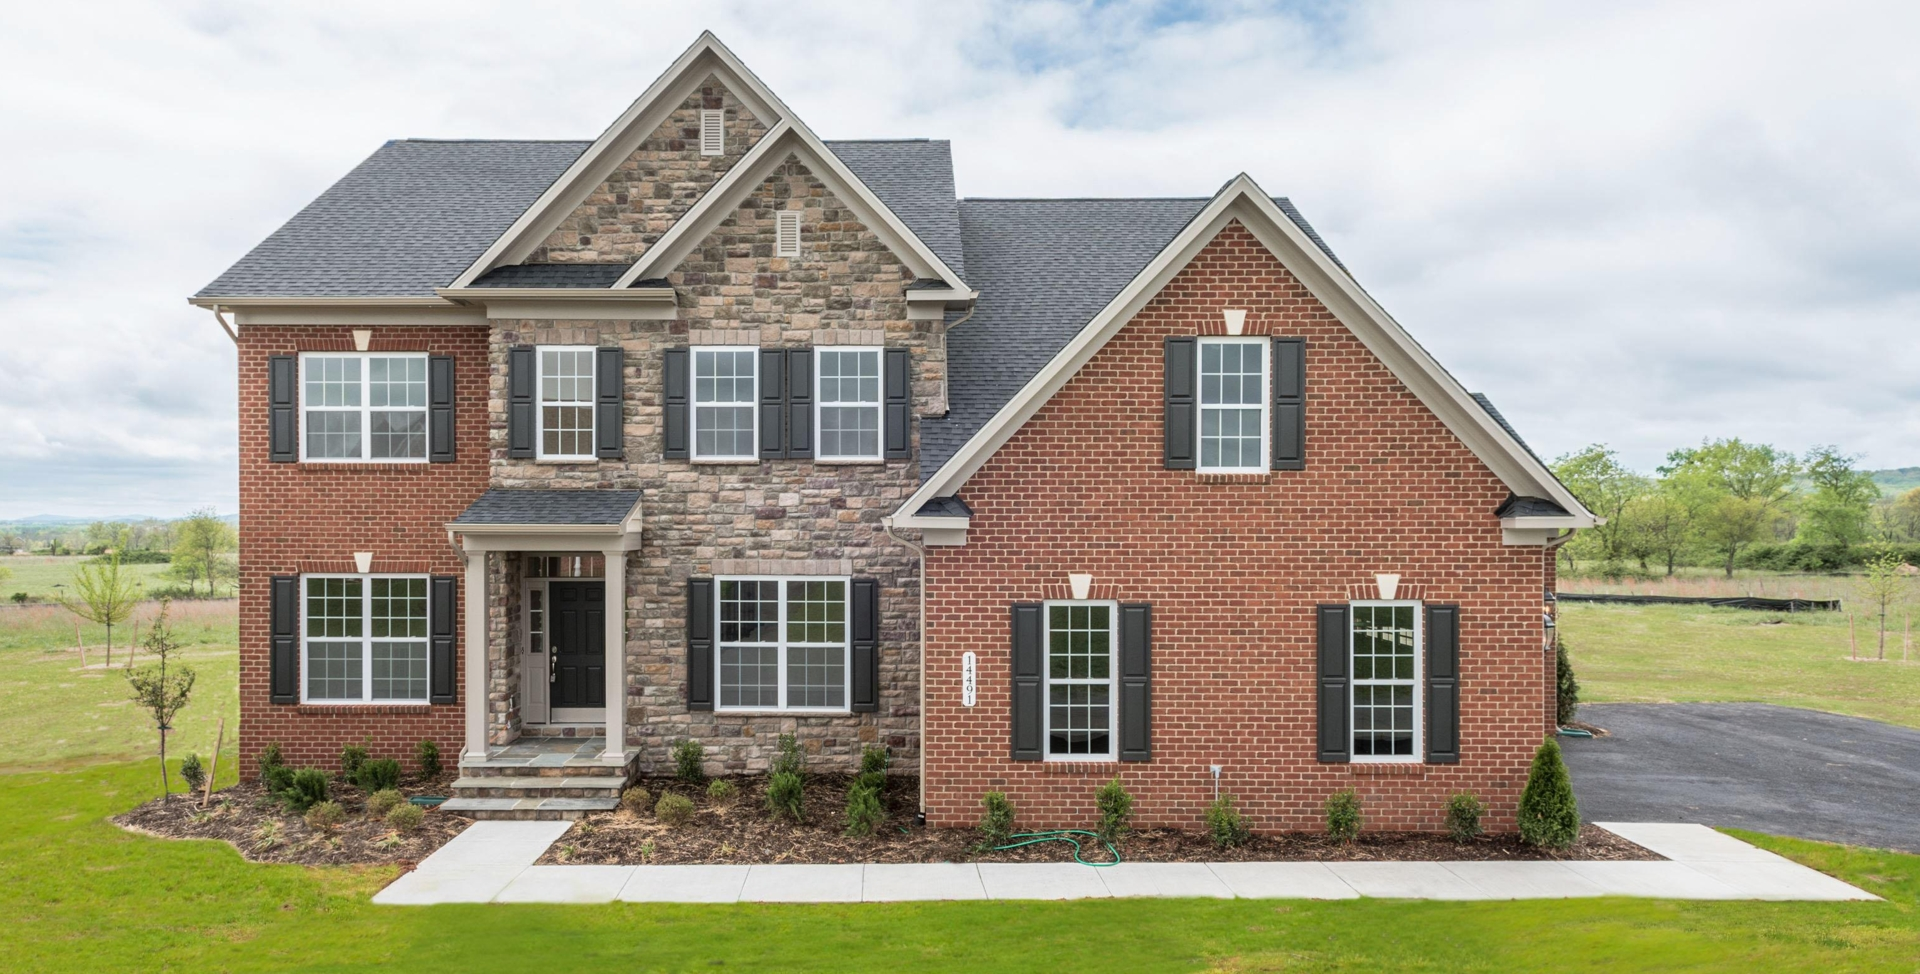 New homes for sale 14491 falconaire placeleesburg va for Mid atlantic home builders